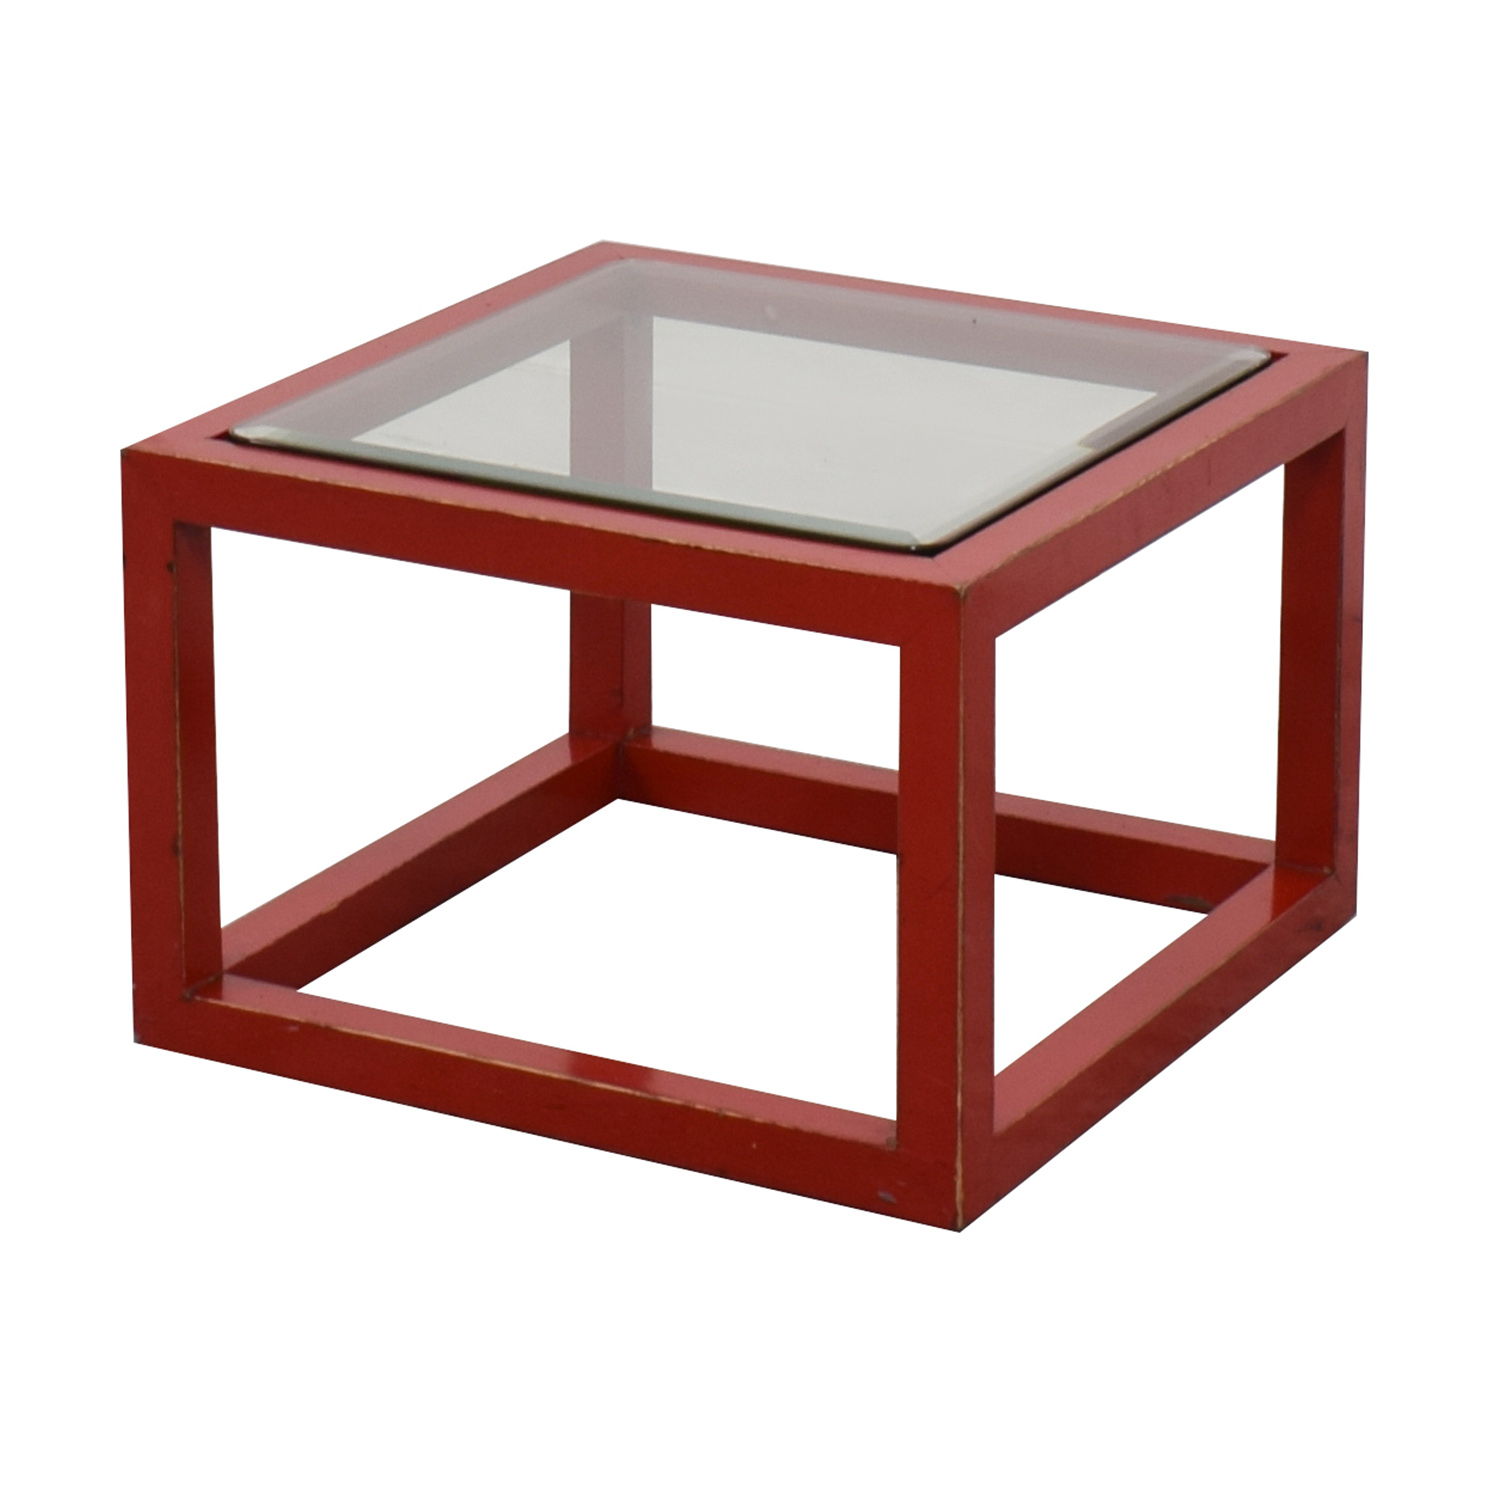 57% OFF Crate & Barrel Crate & Barrel Modern Glass Top Red